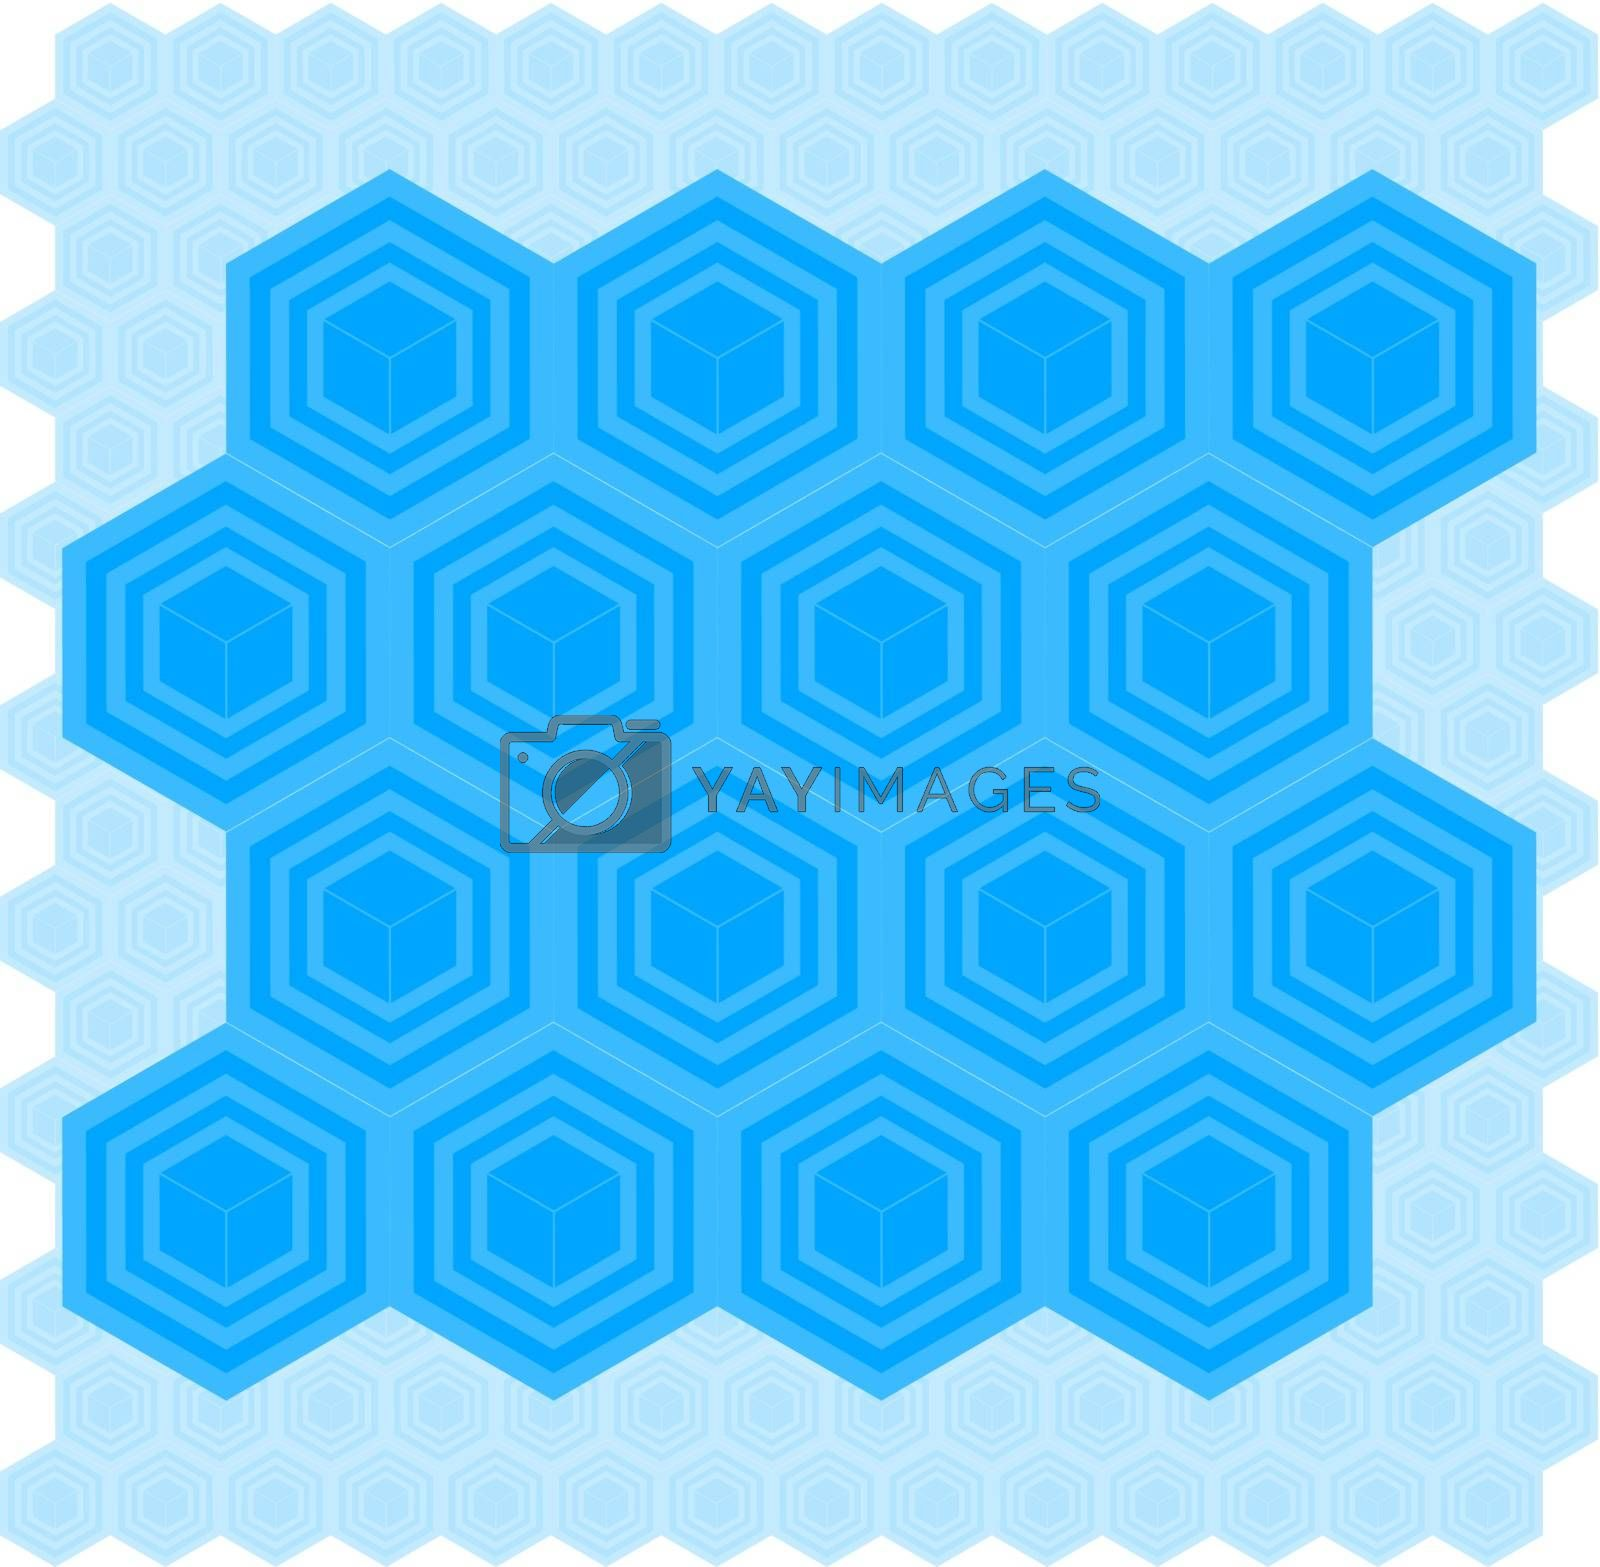 Royalty free image of Blue Box Pattern by graphicgeoff